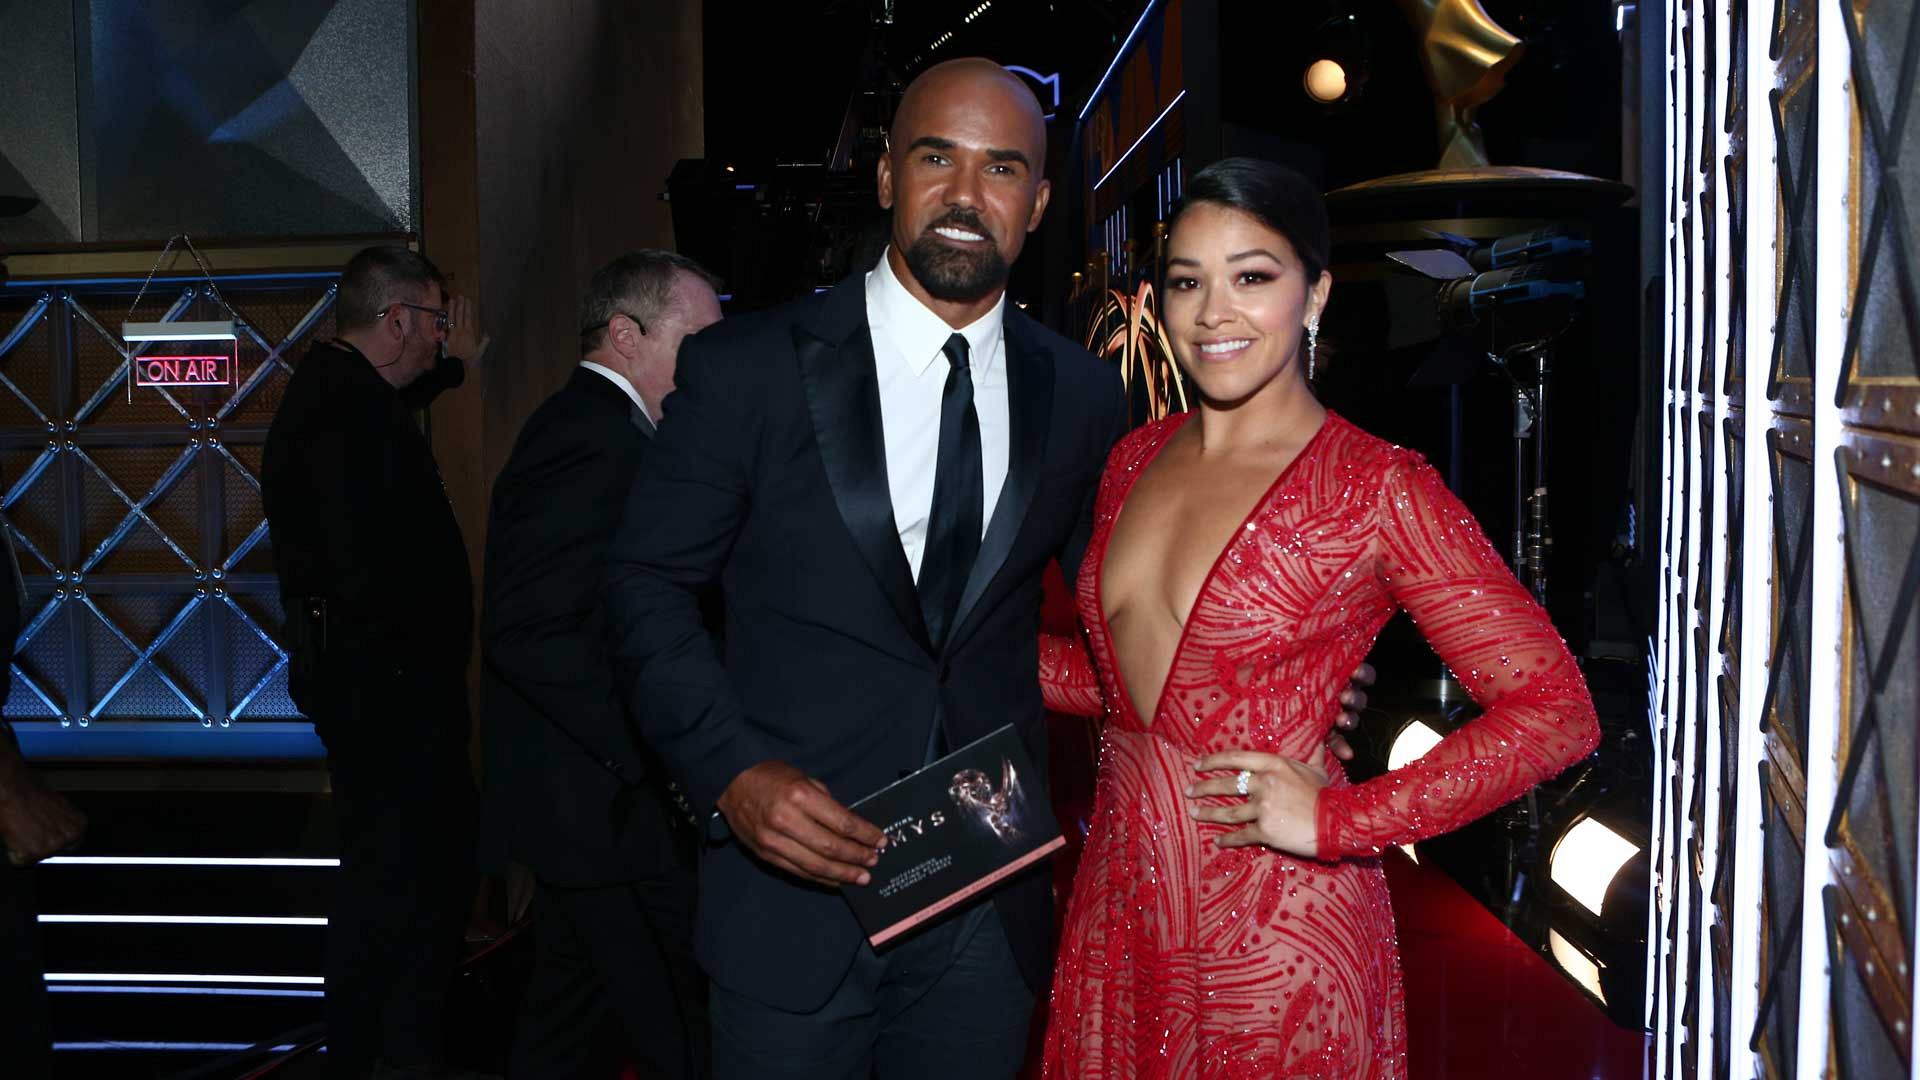 Shemar Moore poses for a quick pic after presenting a 2017 Emmy Award with actress Gina Rodriguez.